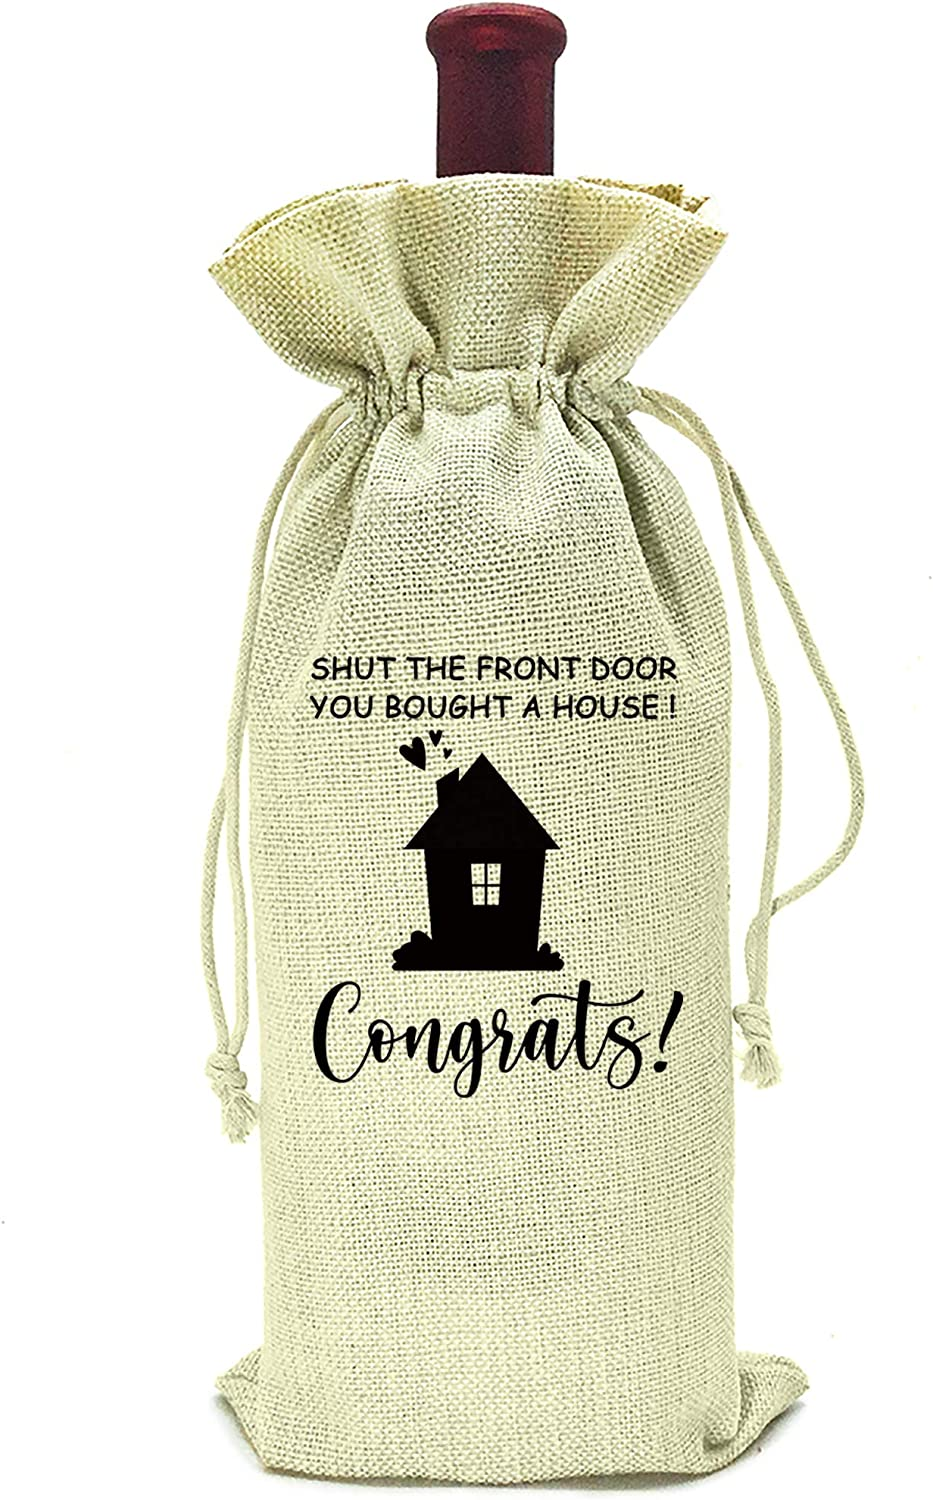 Housewarming Gifts,First New Home House Homeowner Gifts for Men, Women, mom,dad,daughter,son, Friends, Coworkers,Sweet home, you bought a house congrats,wine bag gift